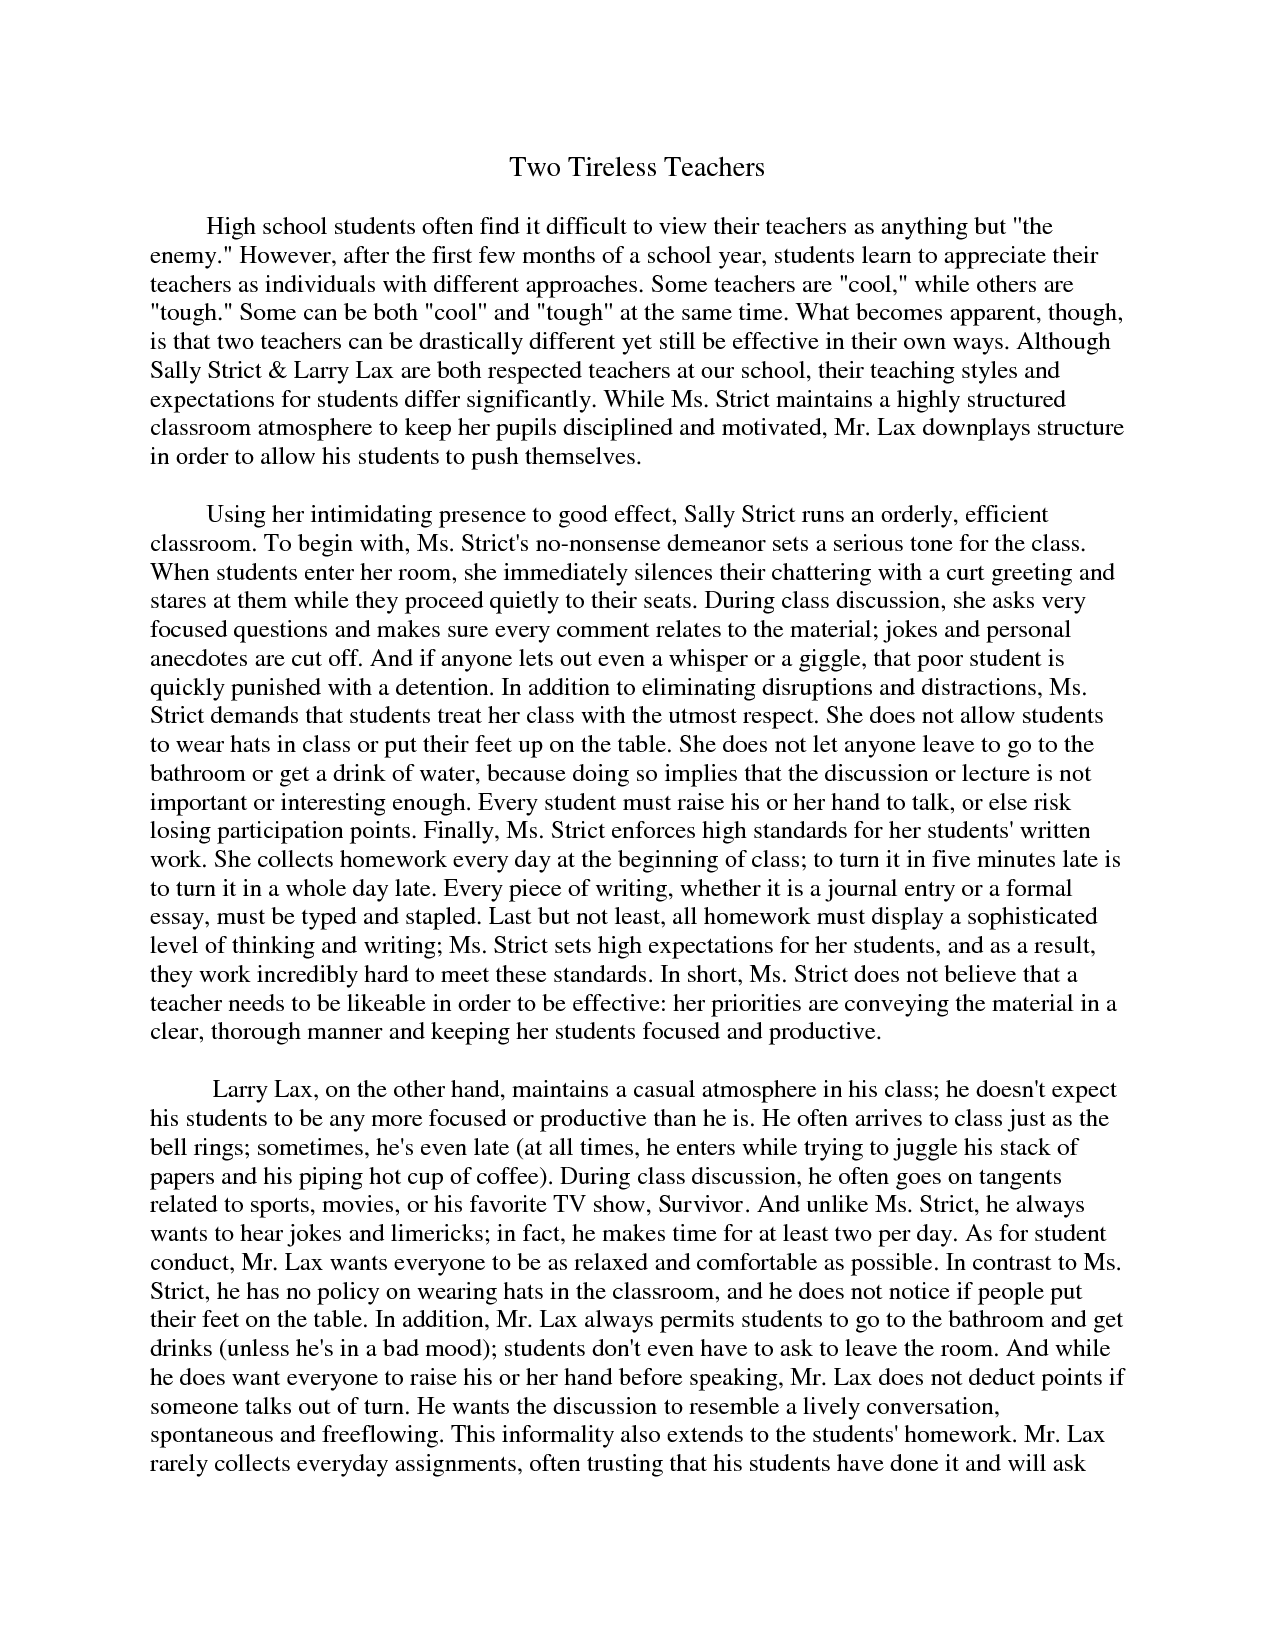 Medium ring synthesis essay   Workshop Wizardry All About Essay Example